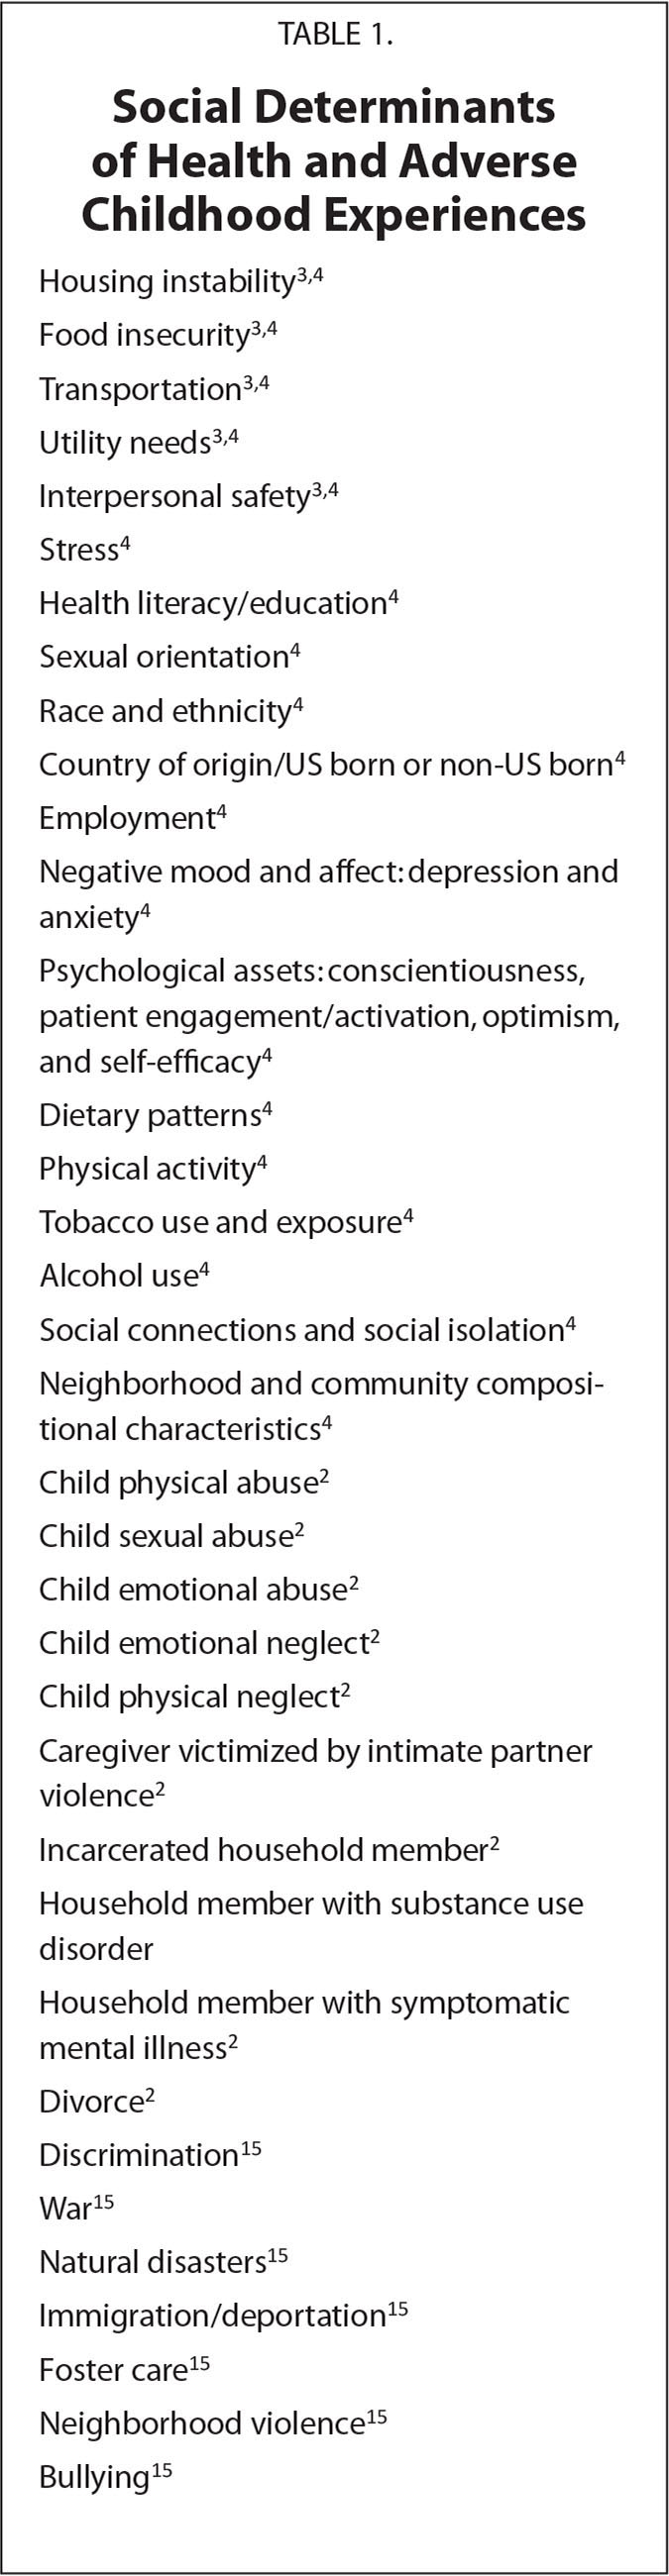 Social Determinants of Health and Adverse Childhood Experiences